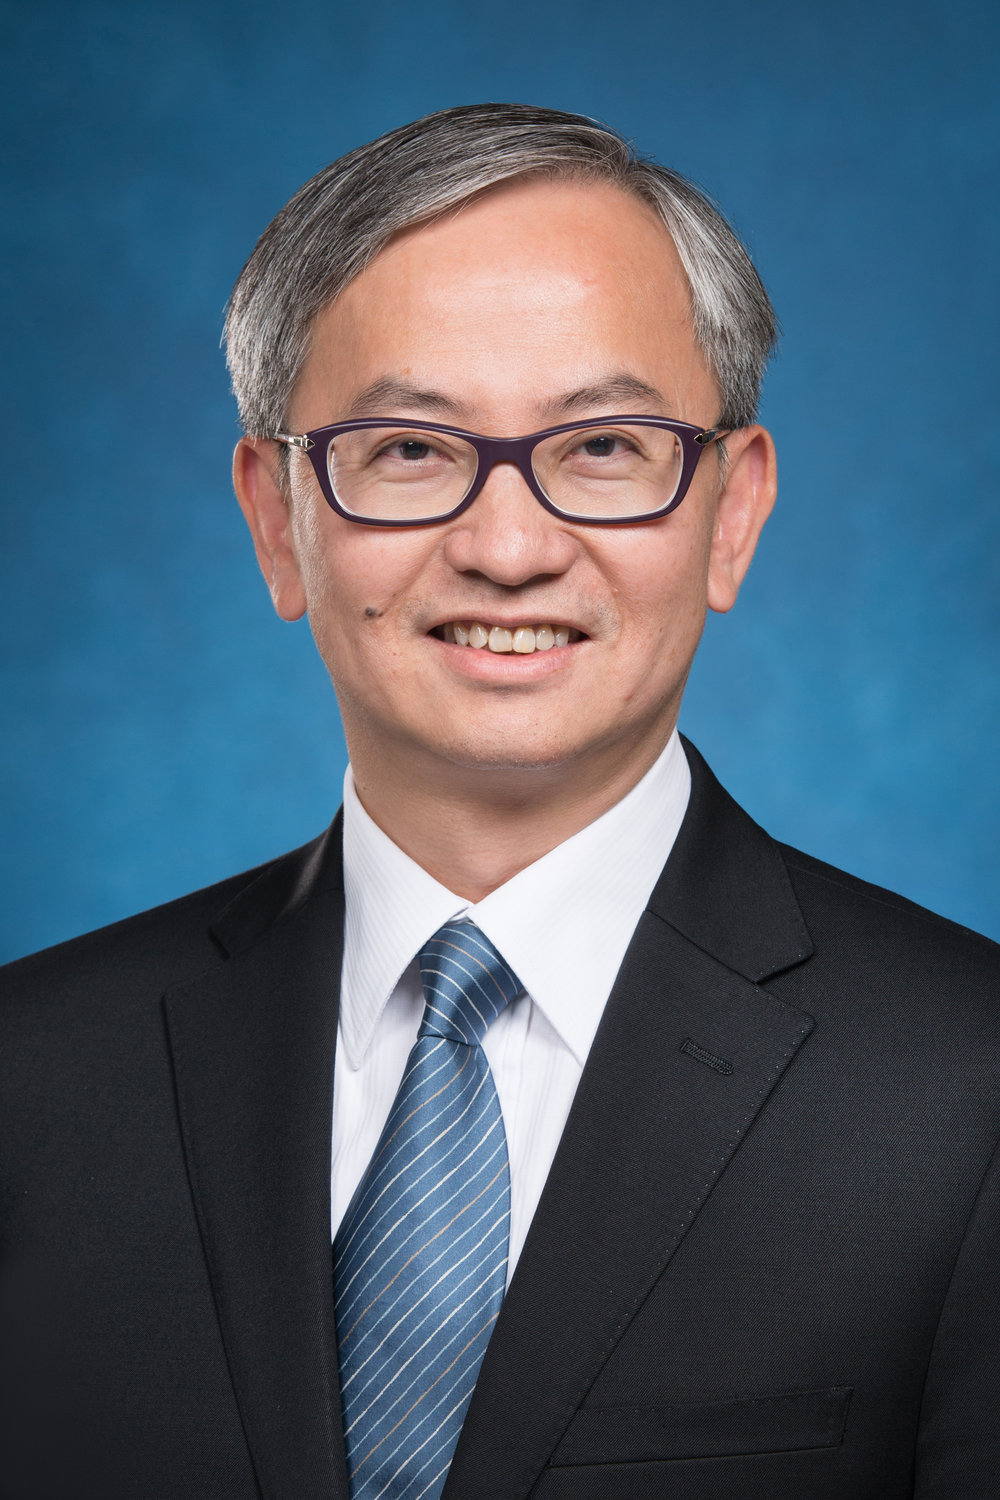 Dr. David Chung , Under Secretary for Innovation and Technology, InvestHK